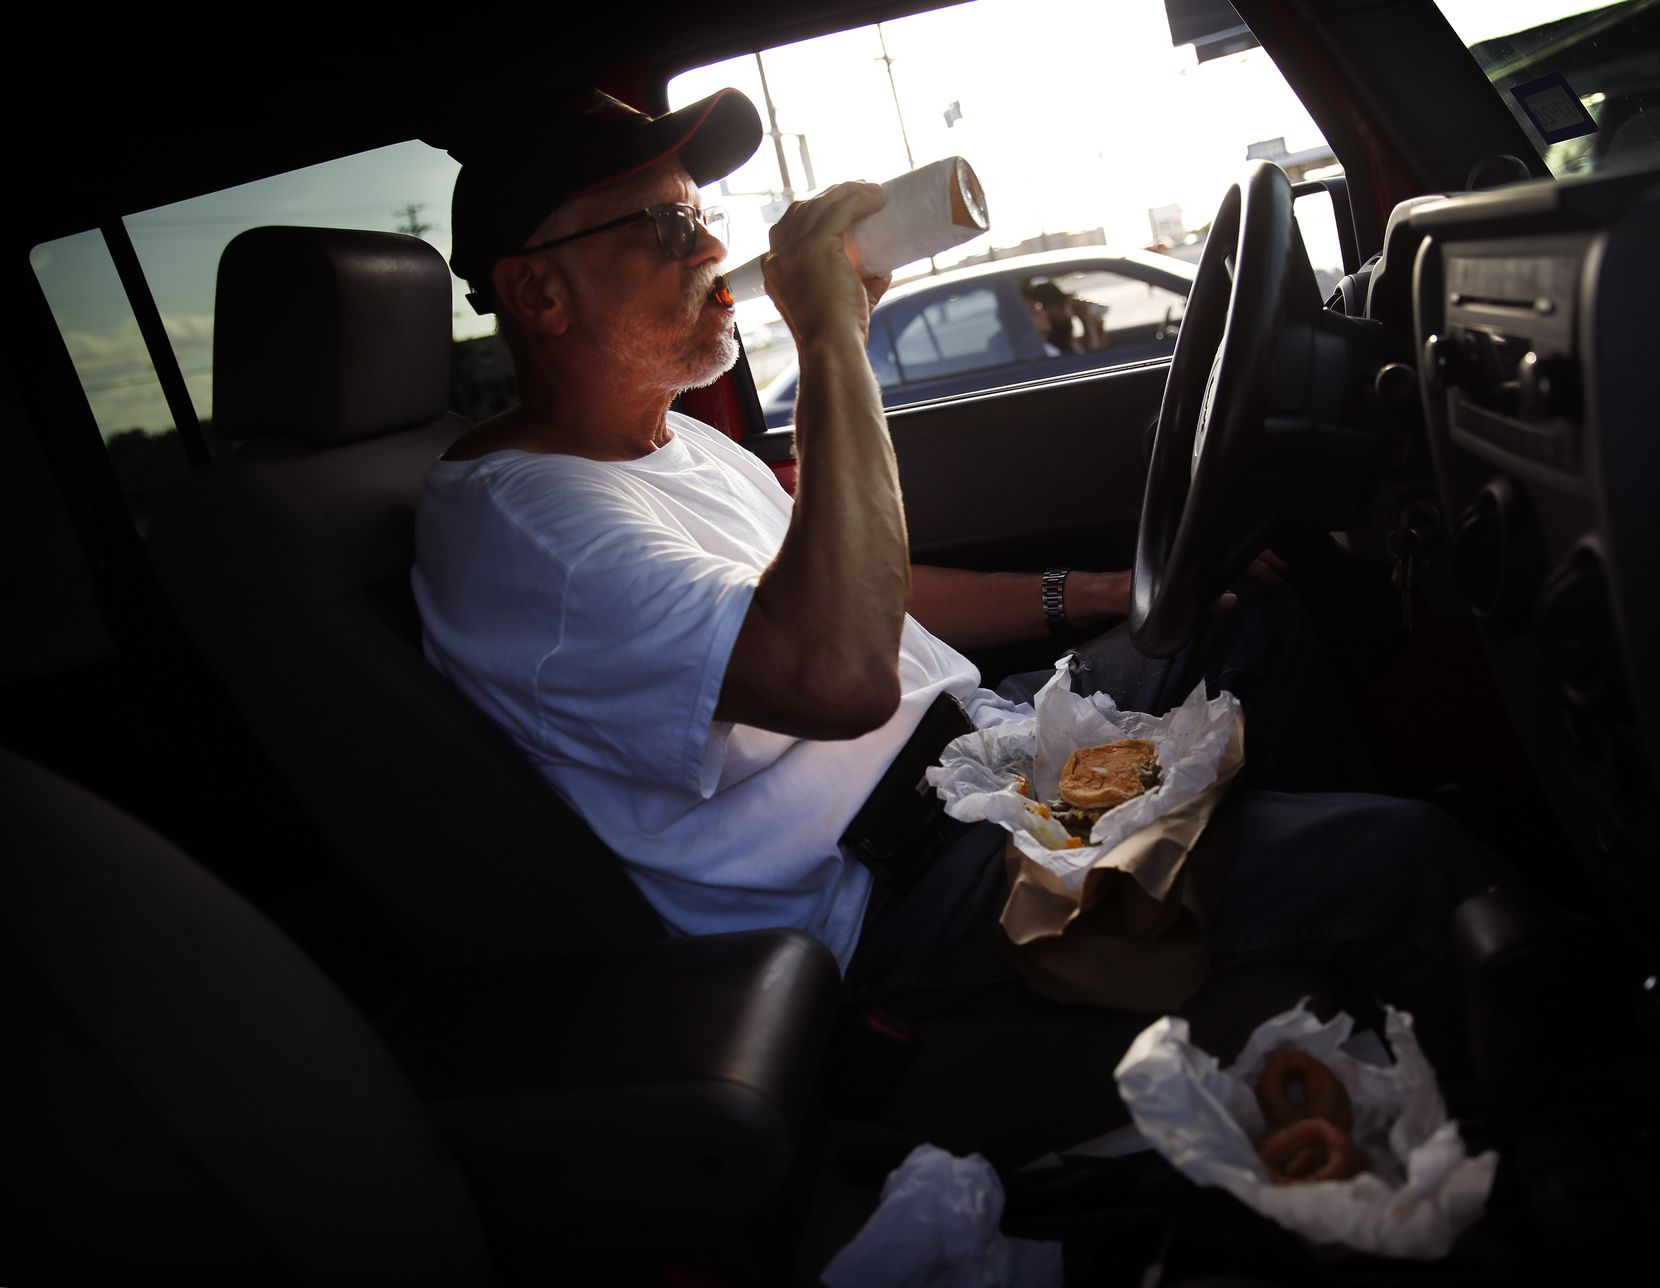 Parked in his Jeep, Ray Pena of Dallas enjoys a Miller Lite with a No. 5 double patty burger and onion rings at Keller's Drive-In on Northwest Highway in Dallas, Thursday, May 14, 2020. Ray said he's is a regular, stopping by a couple days a week. (Tom Fox/The Dallas Morning News)